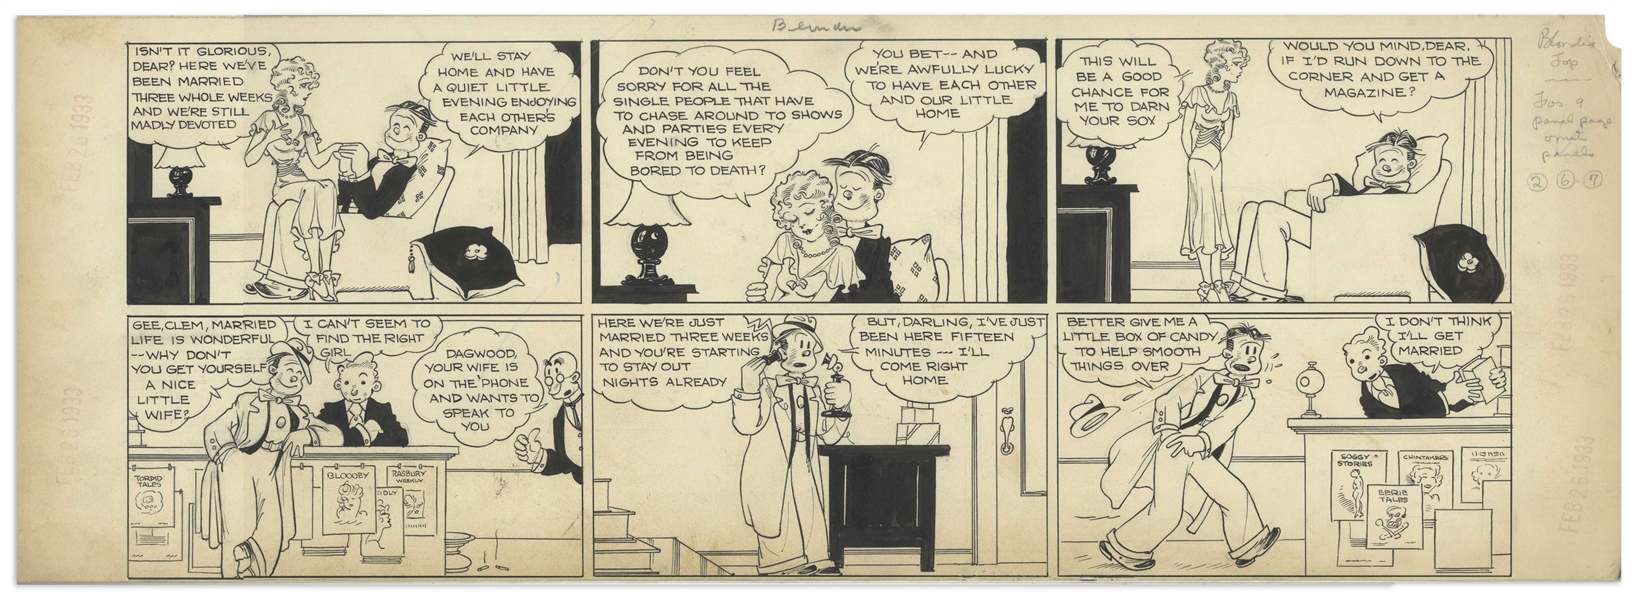 Chic Young Hand-Drawn ''Blondie'' Sunday Comic Strip From 1933 -- Blondie and Dagwood as Newlyweds, Just Days After Their Wedding